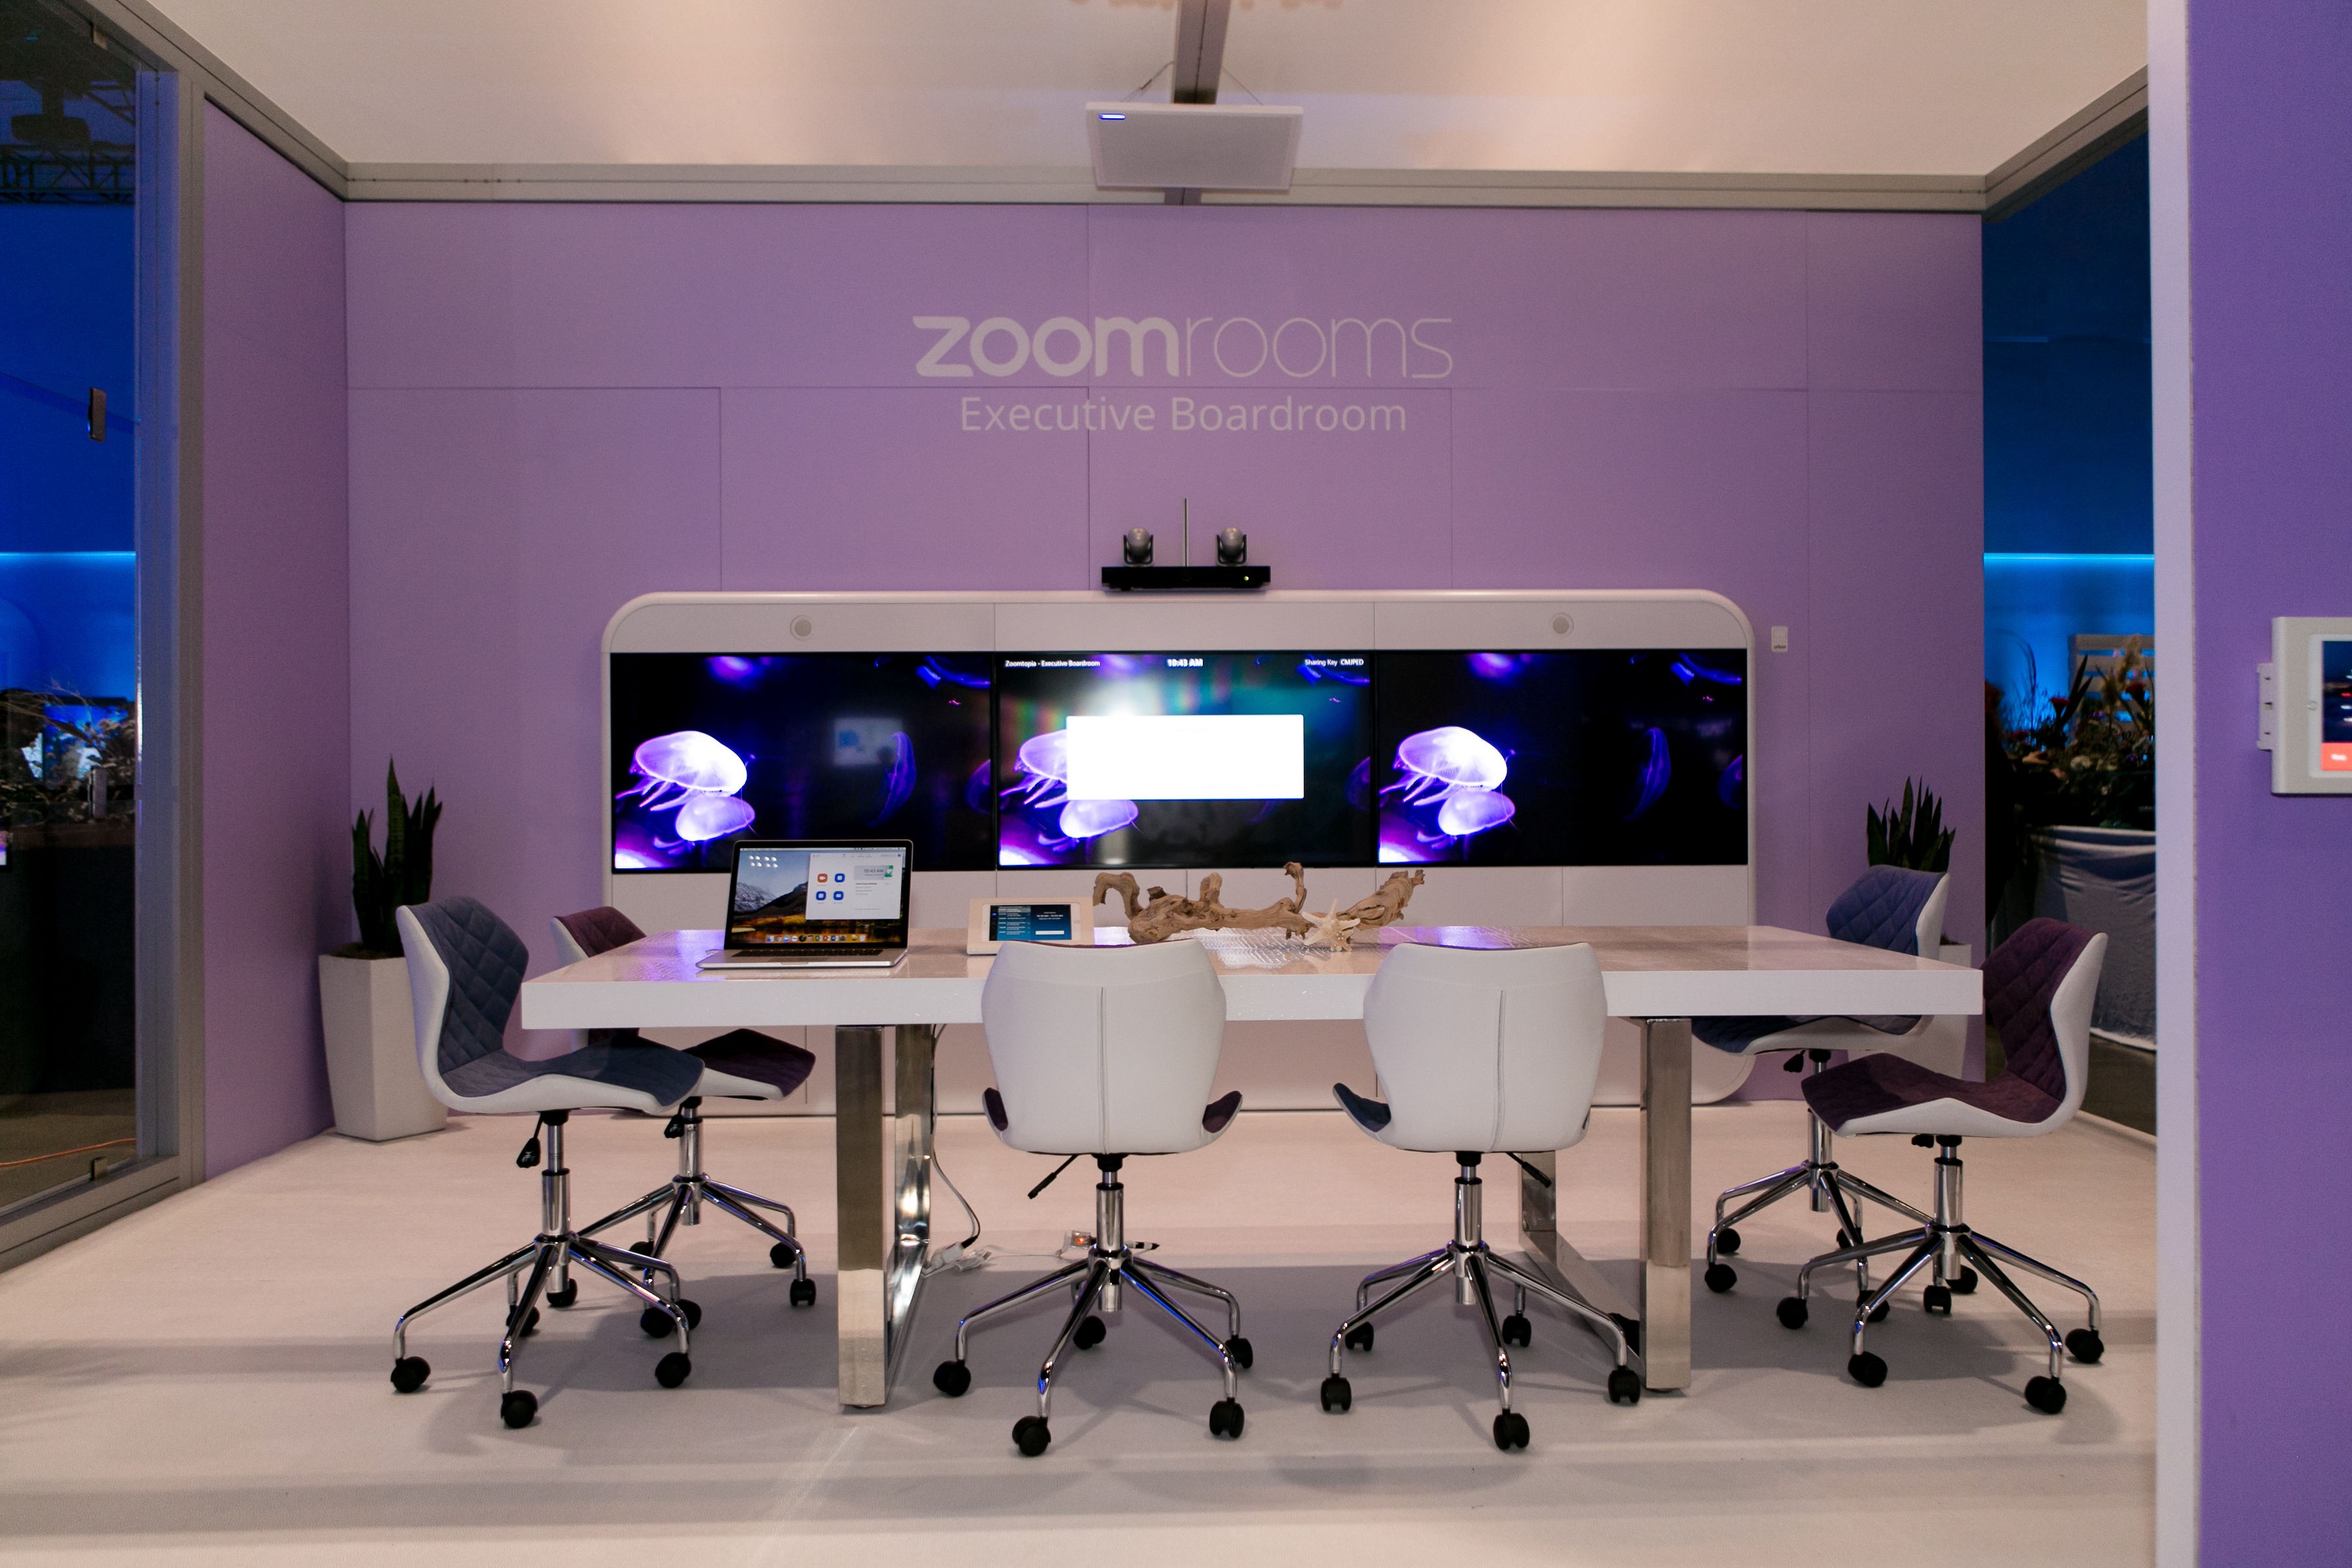 Working on Security and Safety with Zoom  by Alex Stamos  Medium